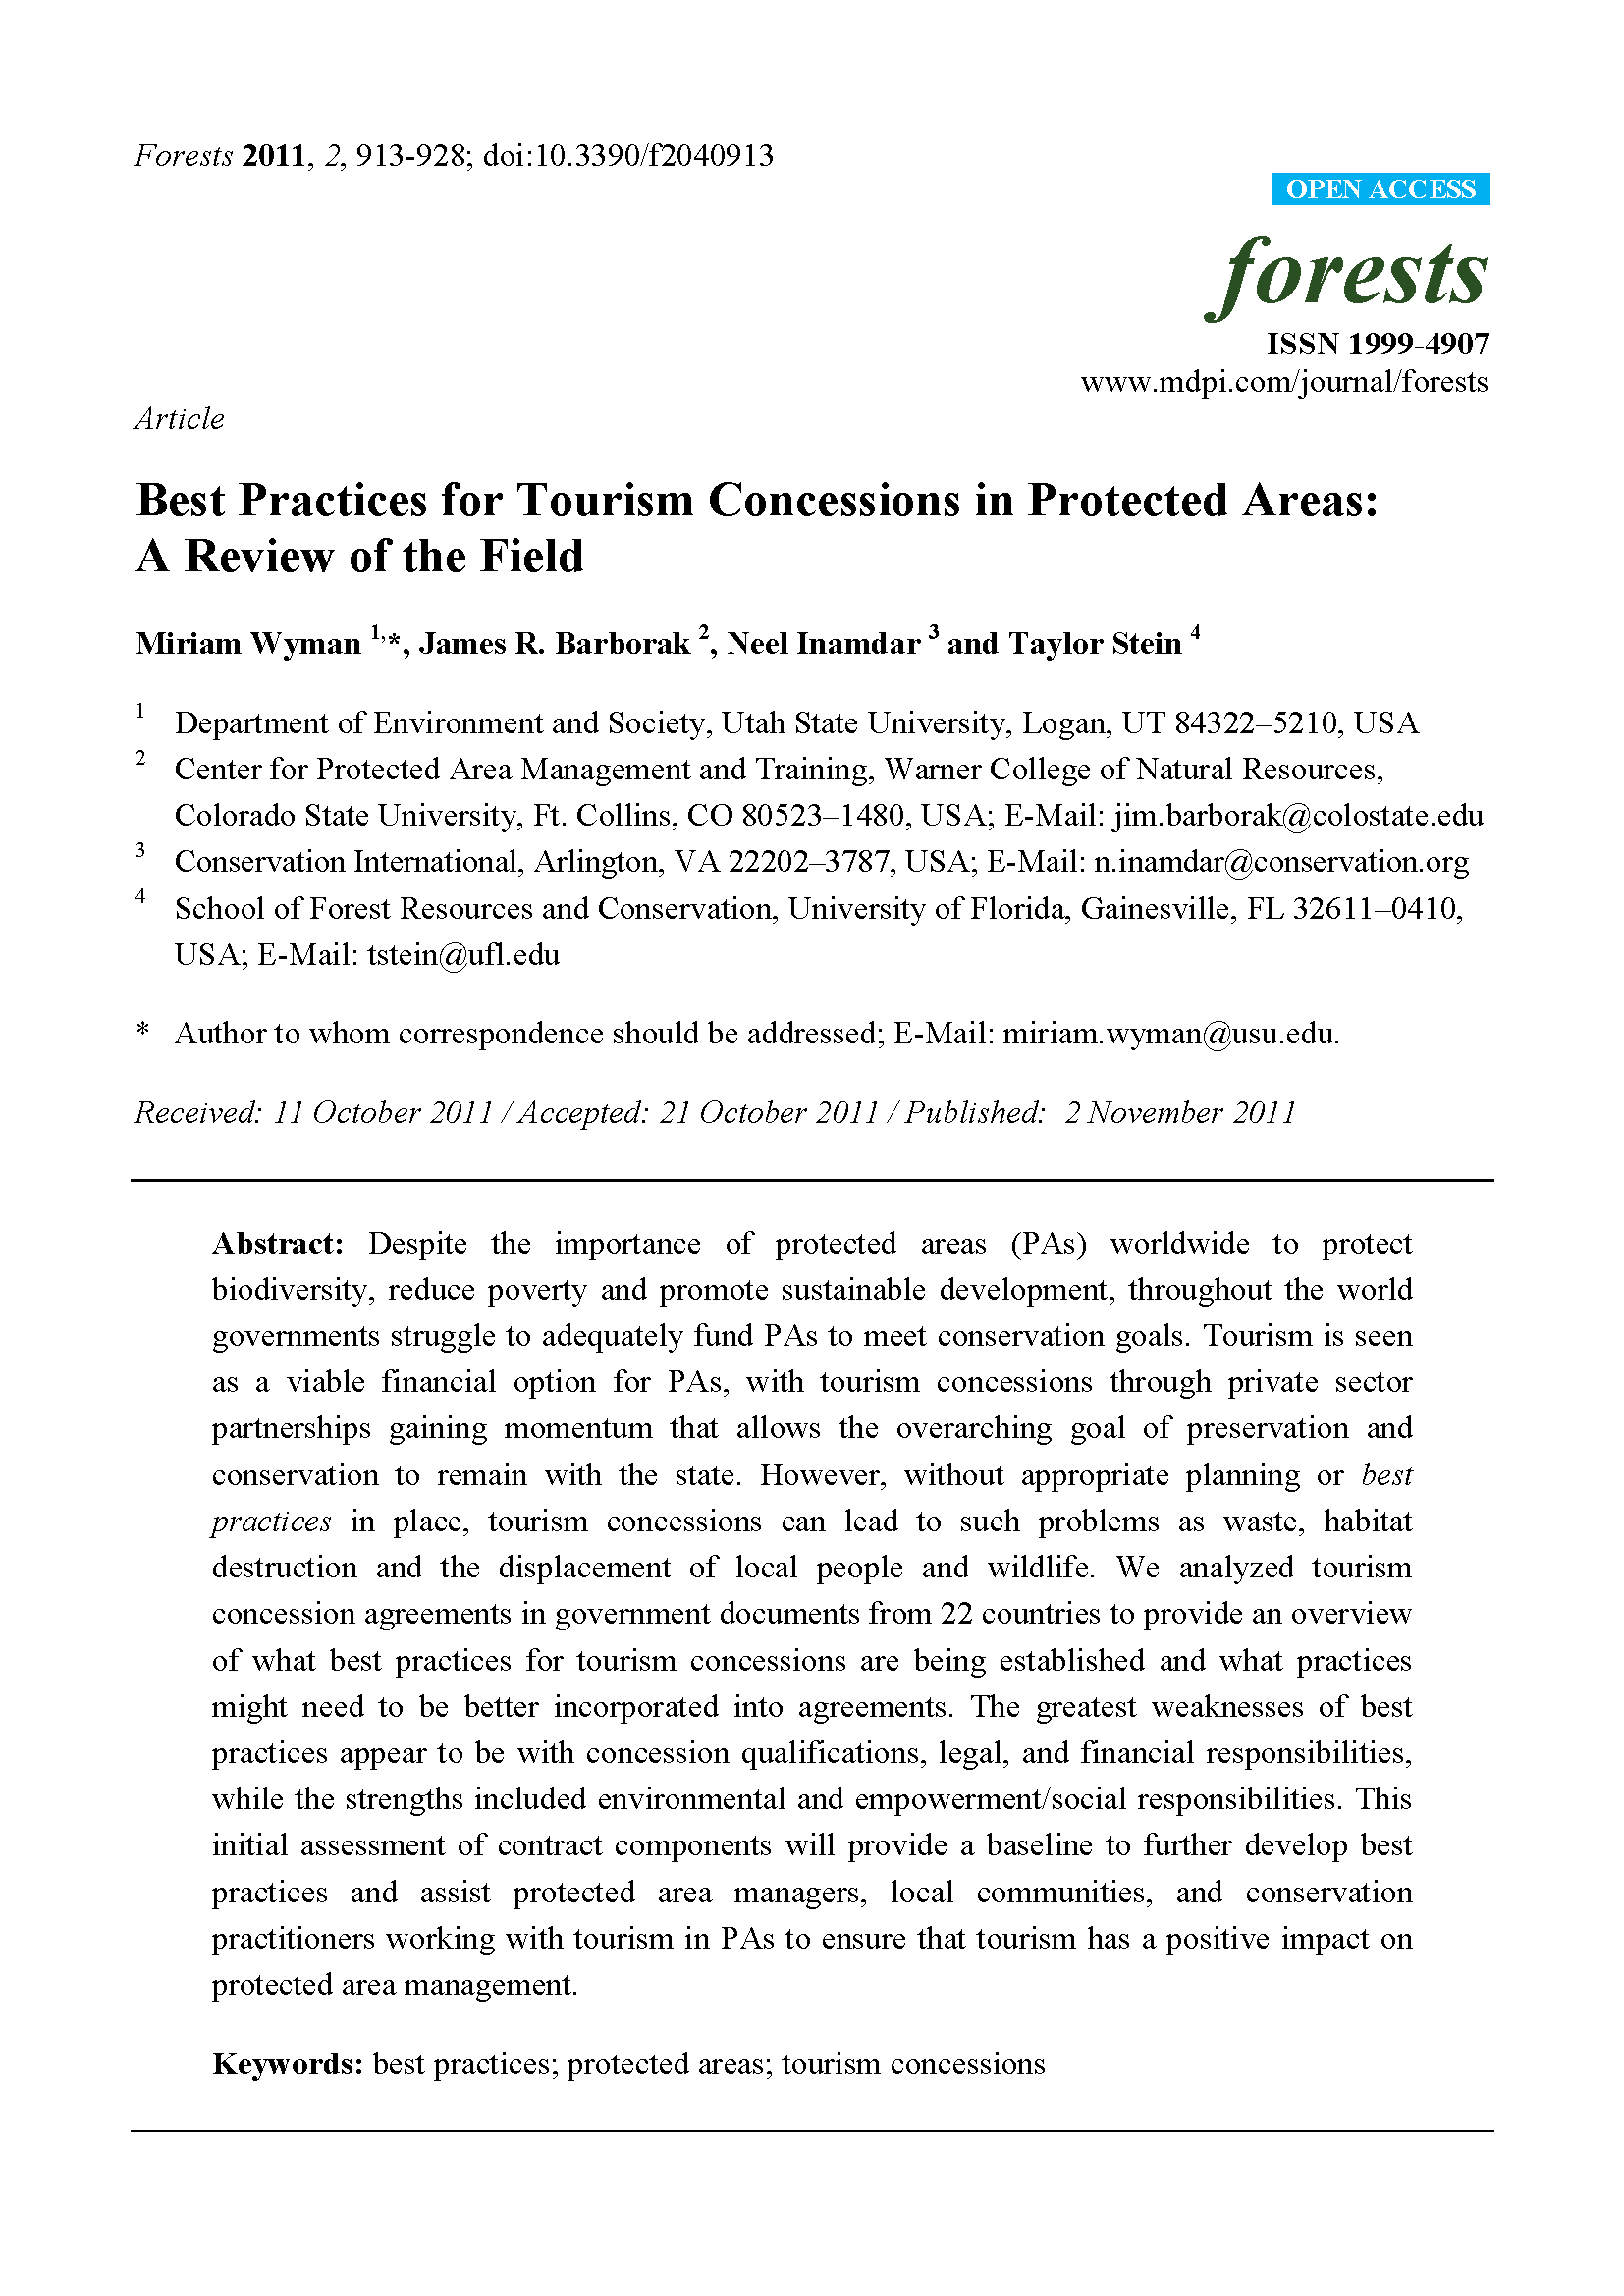 Capa da Best practices for tourism concessions in protected areas: a review of the field